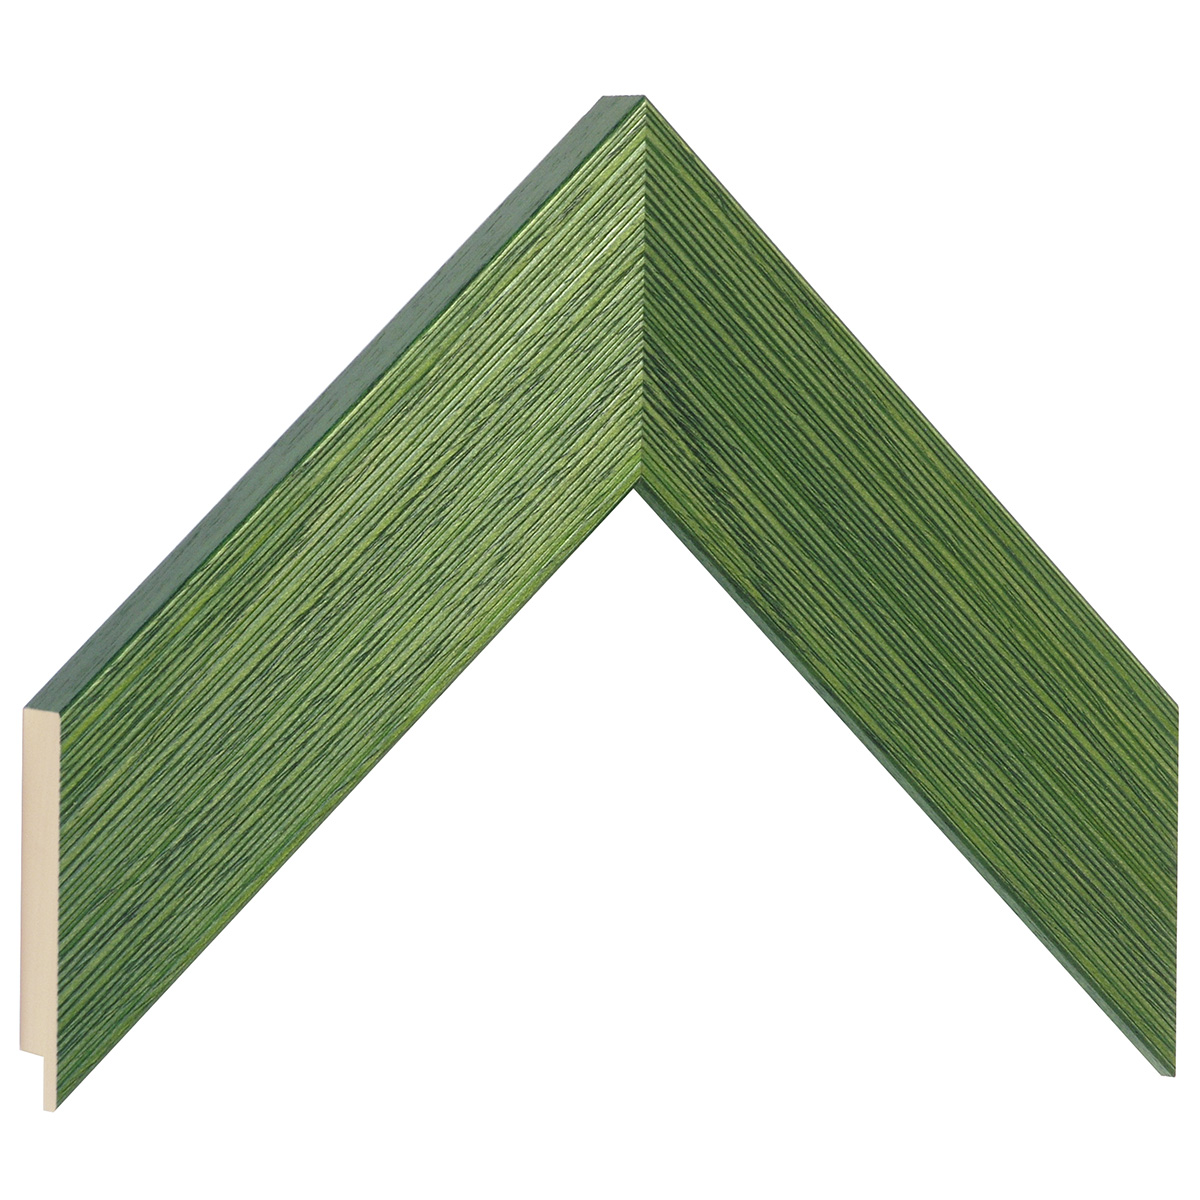 Moulding ayous, width 48mm height 20 - streaked green finish